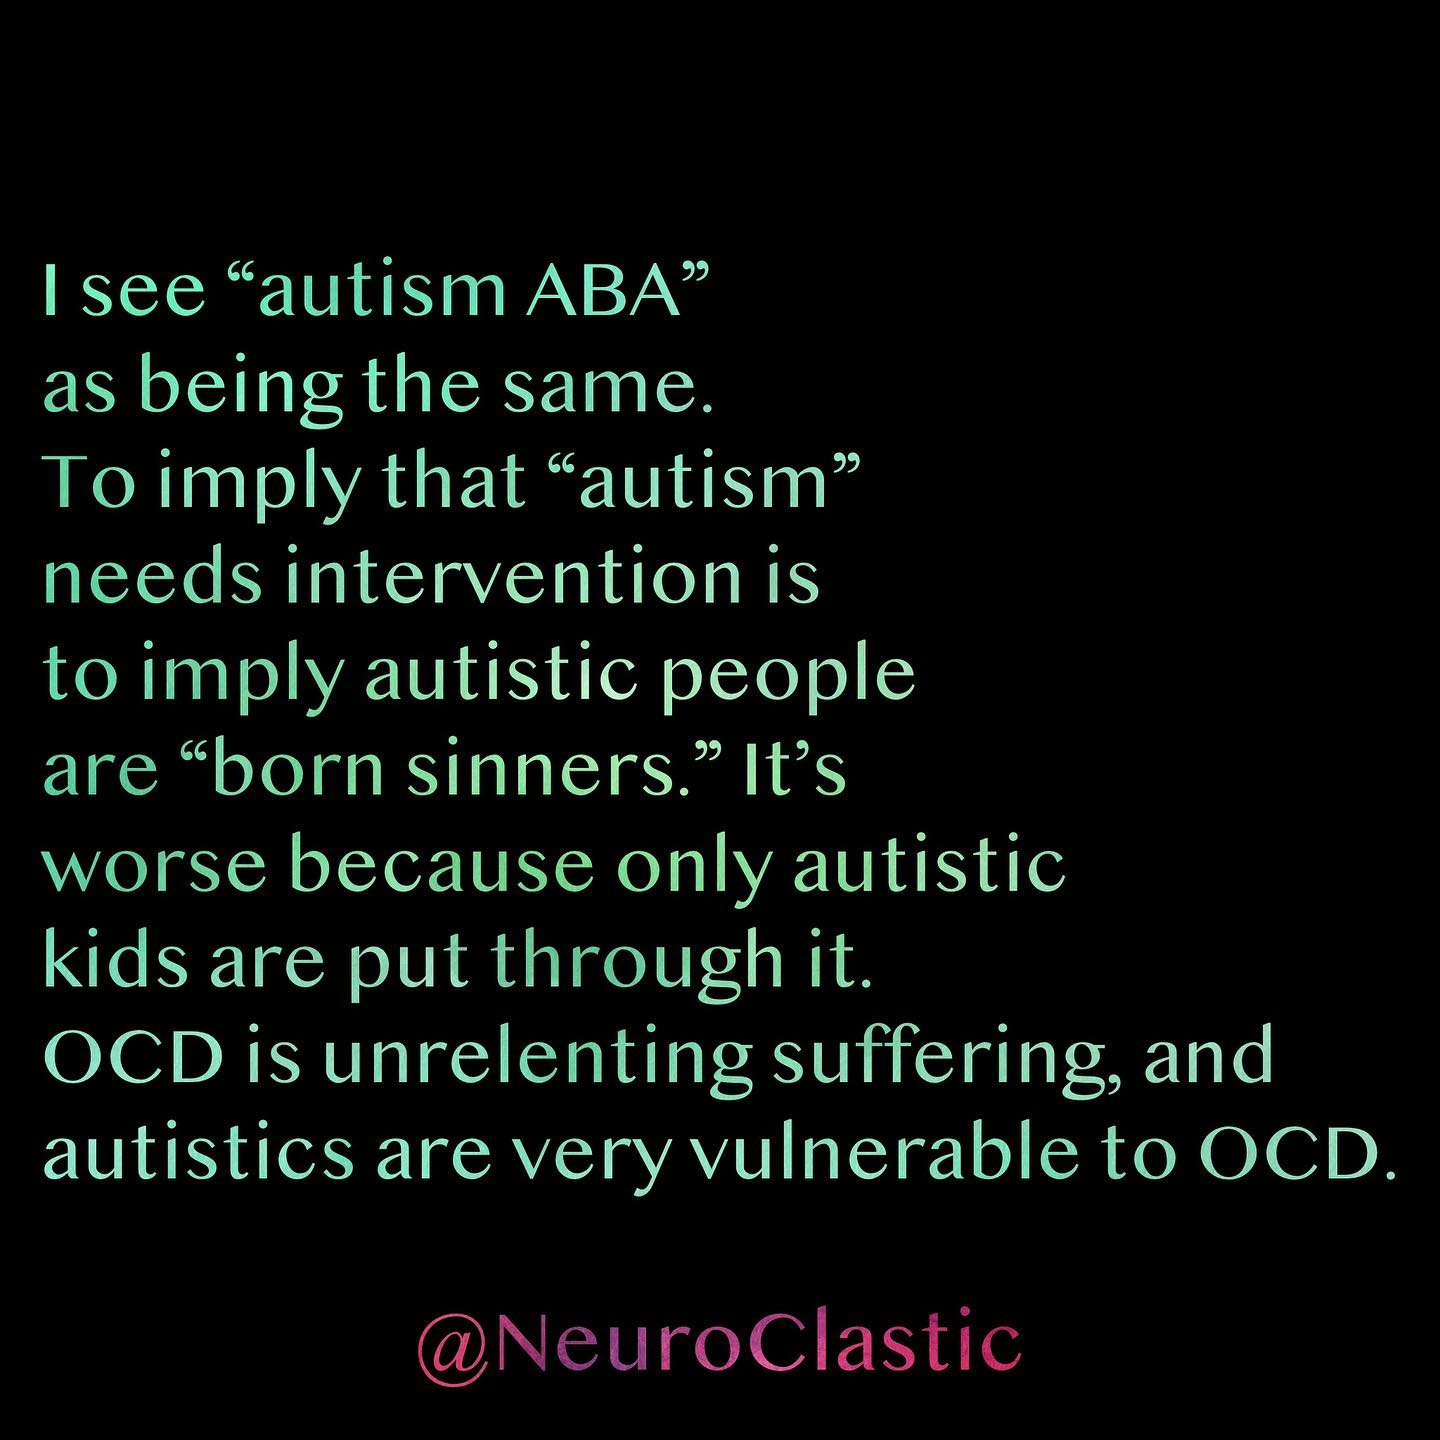 """I see """"autism ABA"""" as being the same. To imply that """"autism"""" needs intervention is to imply autistic people are """"born sinners."""" It's worse because only autistic kids are put through it. OCD is unrelenting suffering, and autistics are very vulnerable to OCD. @NeuroClastic"""